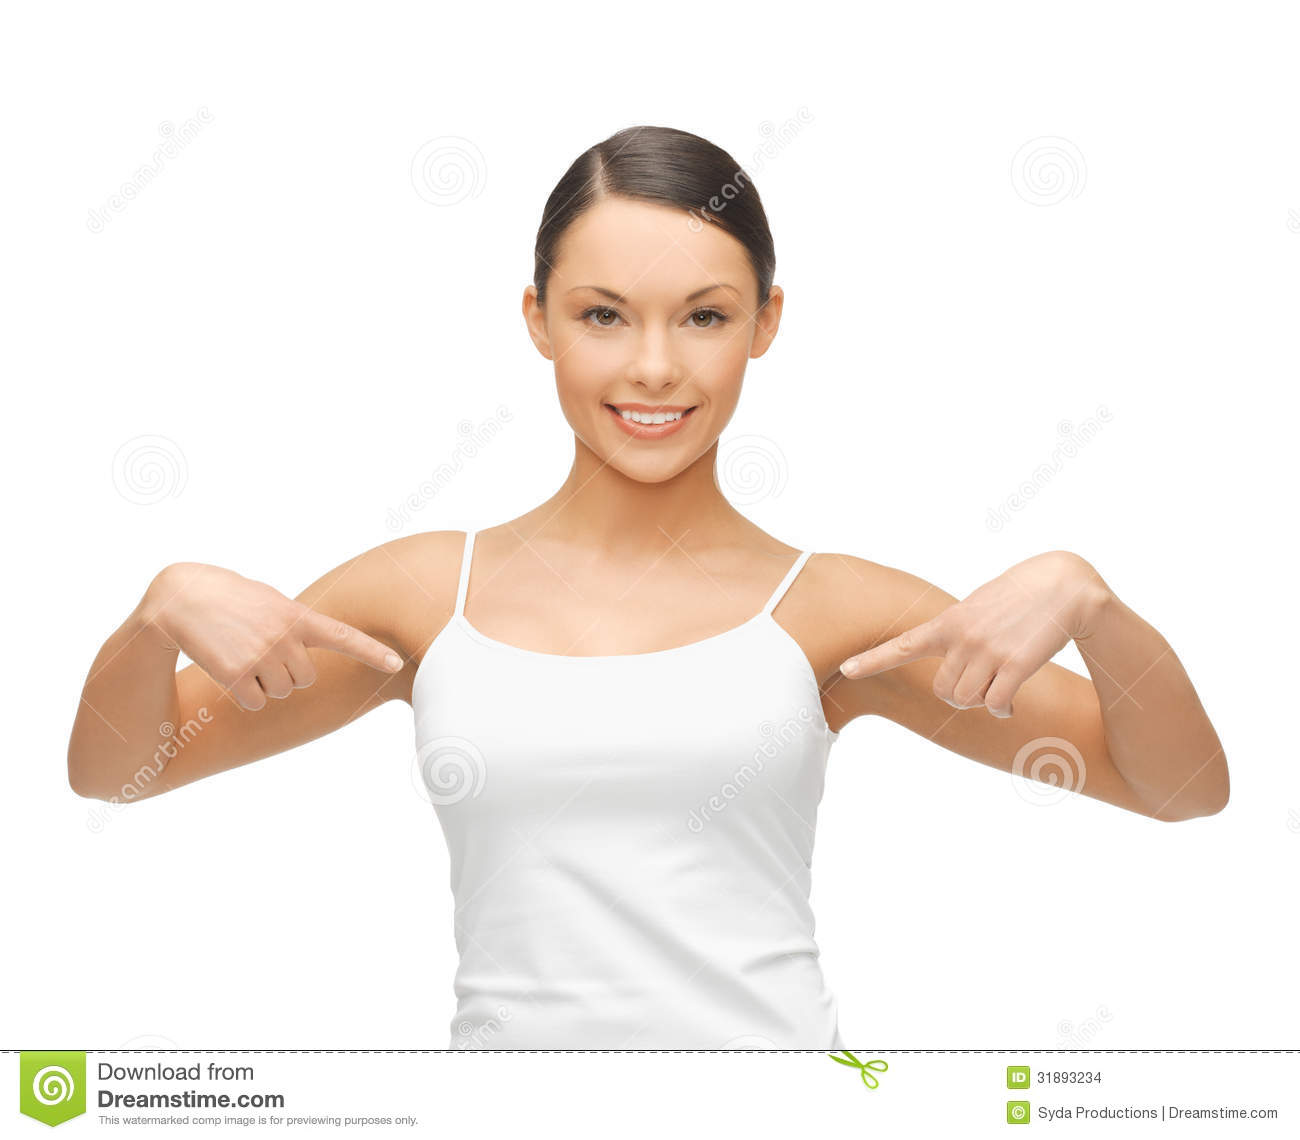 Woman In Blank White T-shirt Pointing At Herself Stock Images - Image ...